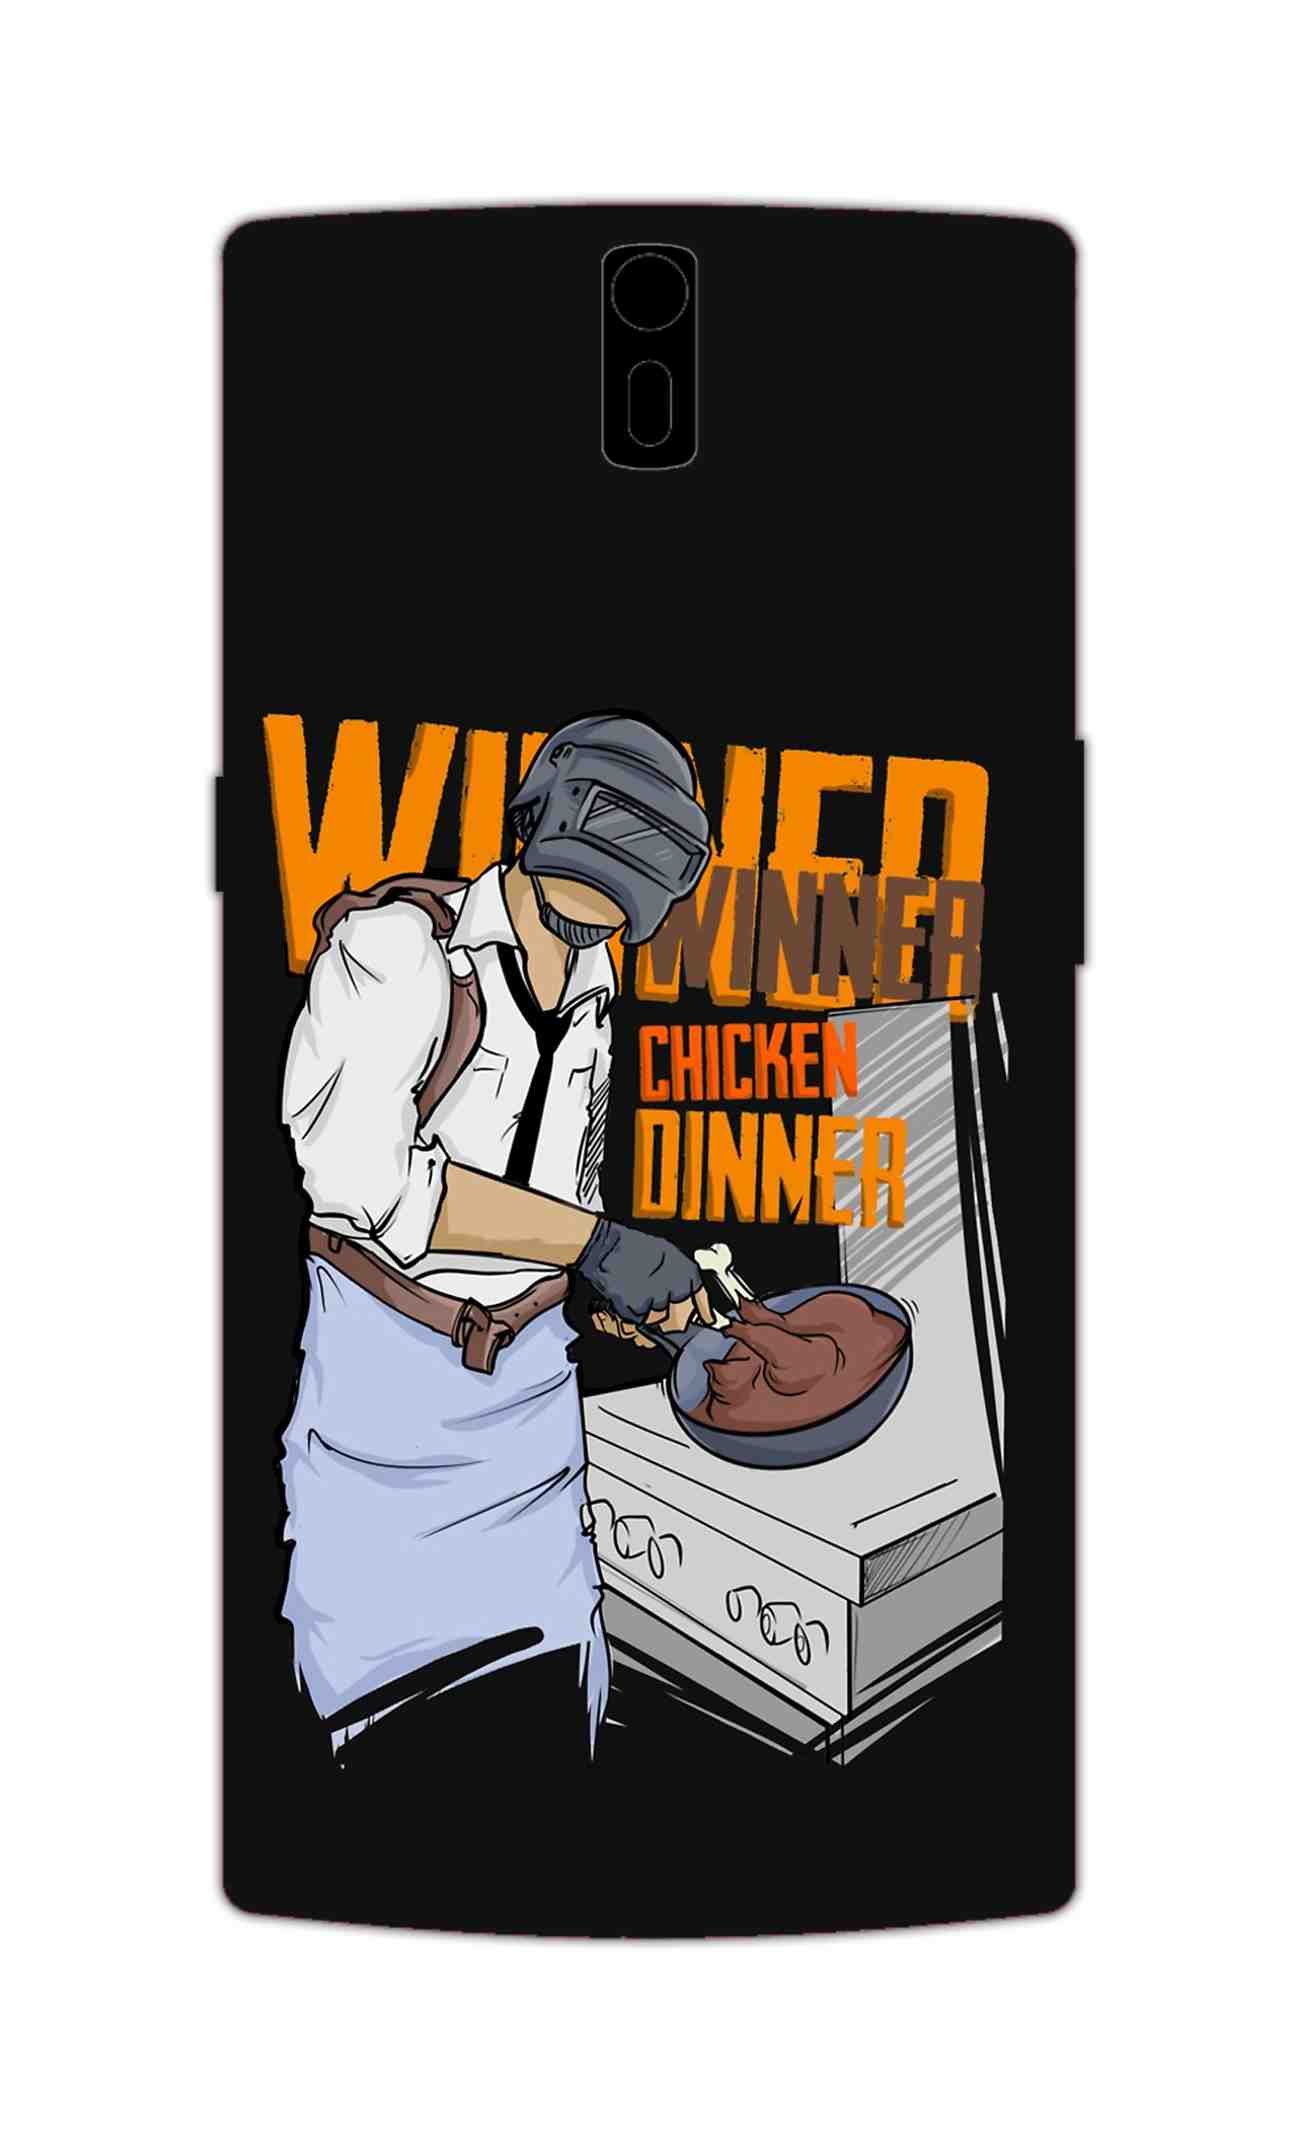 Man Making Chicken Dinner For Game Lovers OnePlus 1 Mobile Cover Case - MADANYU